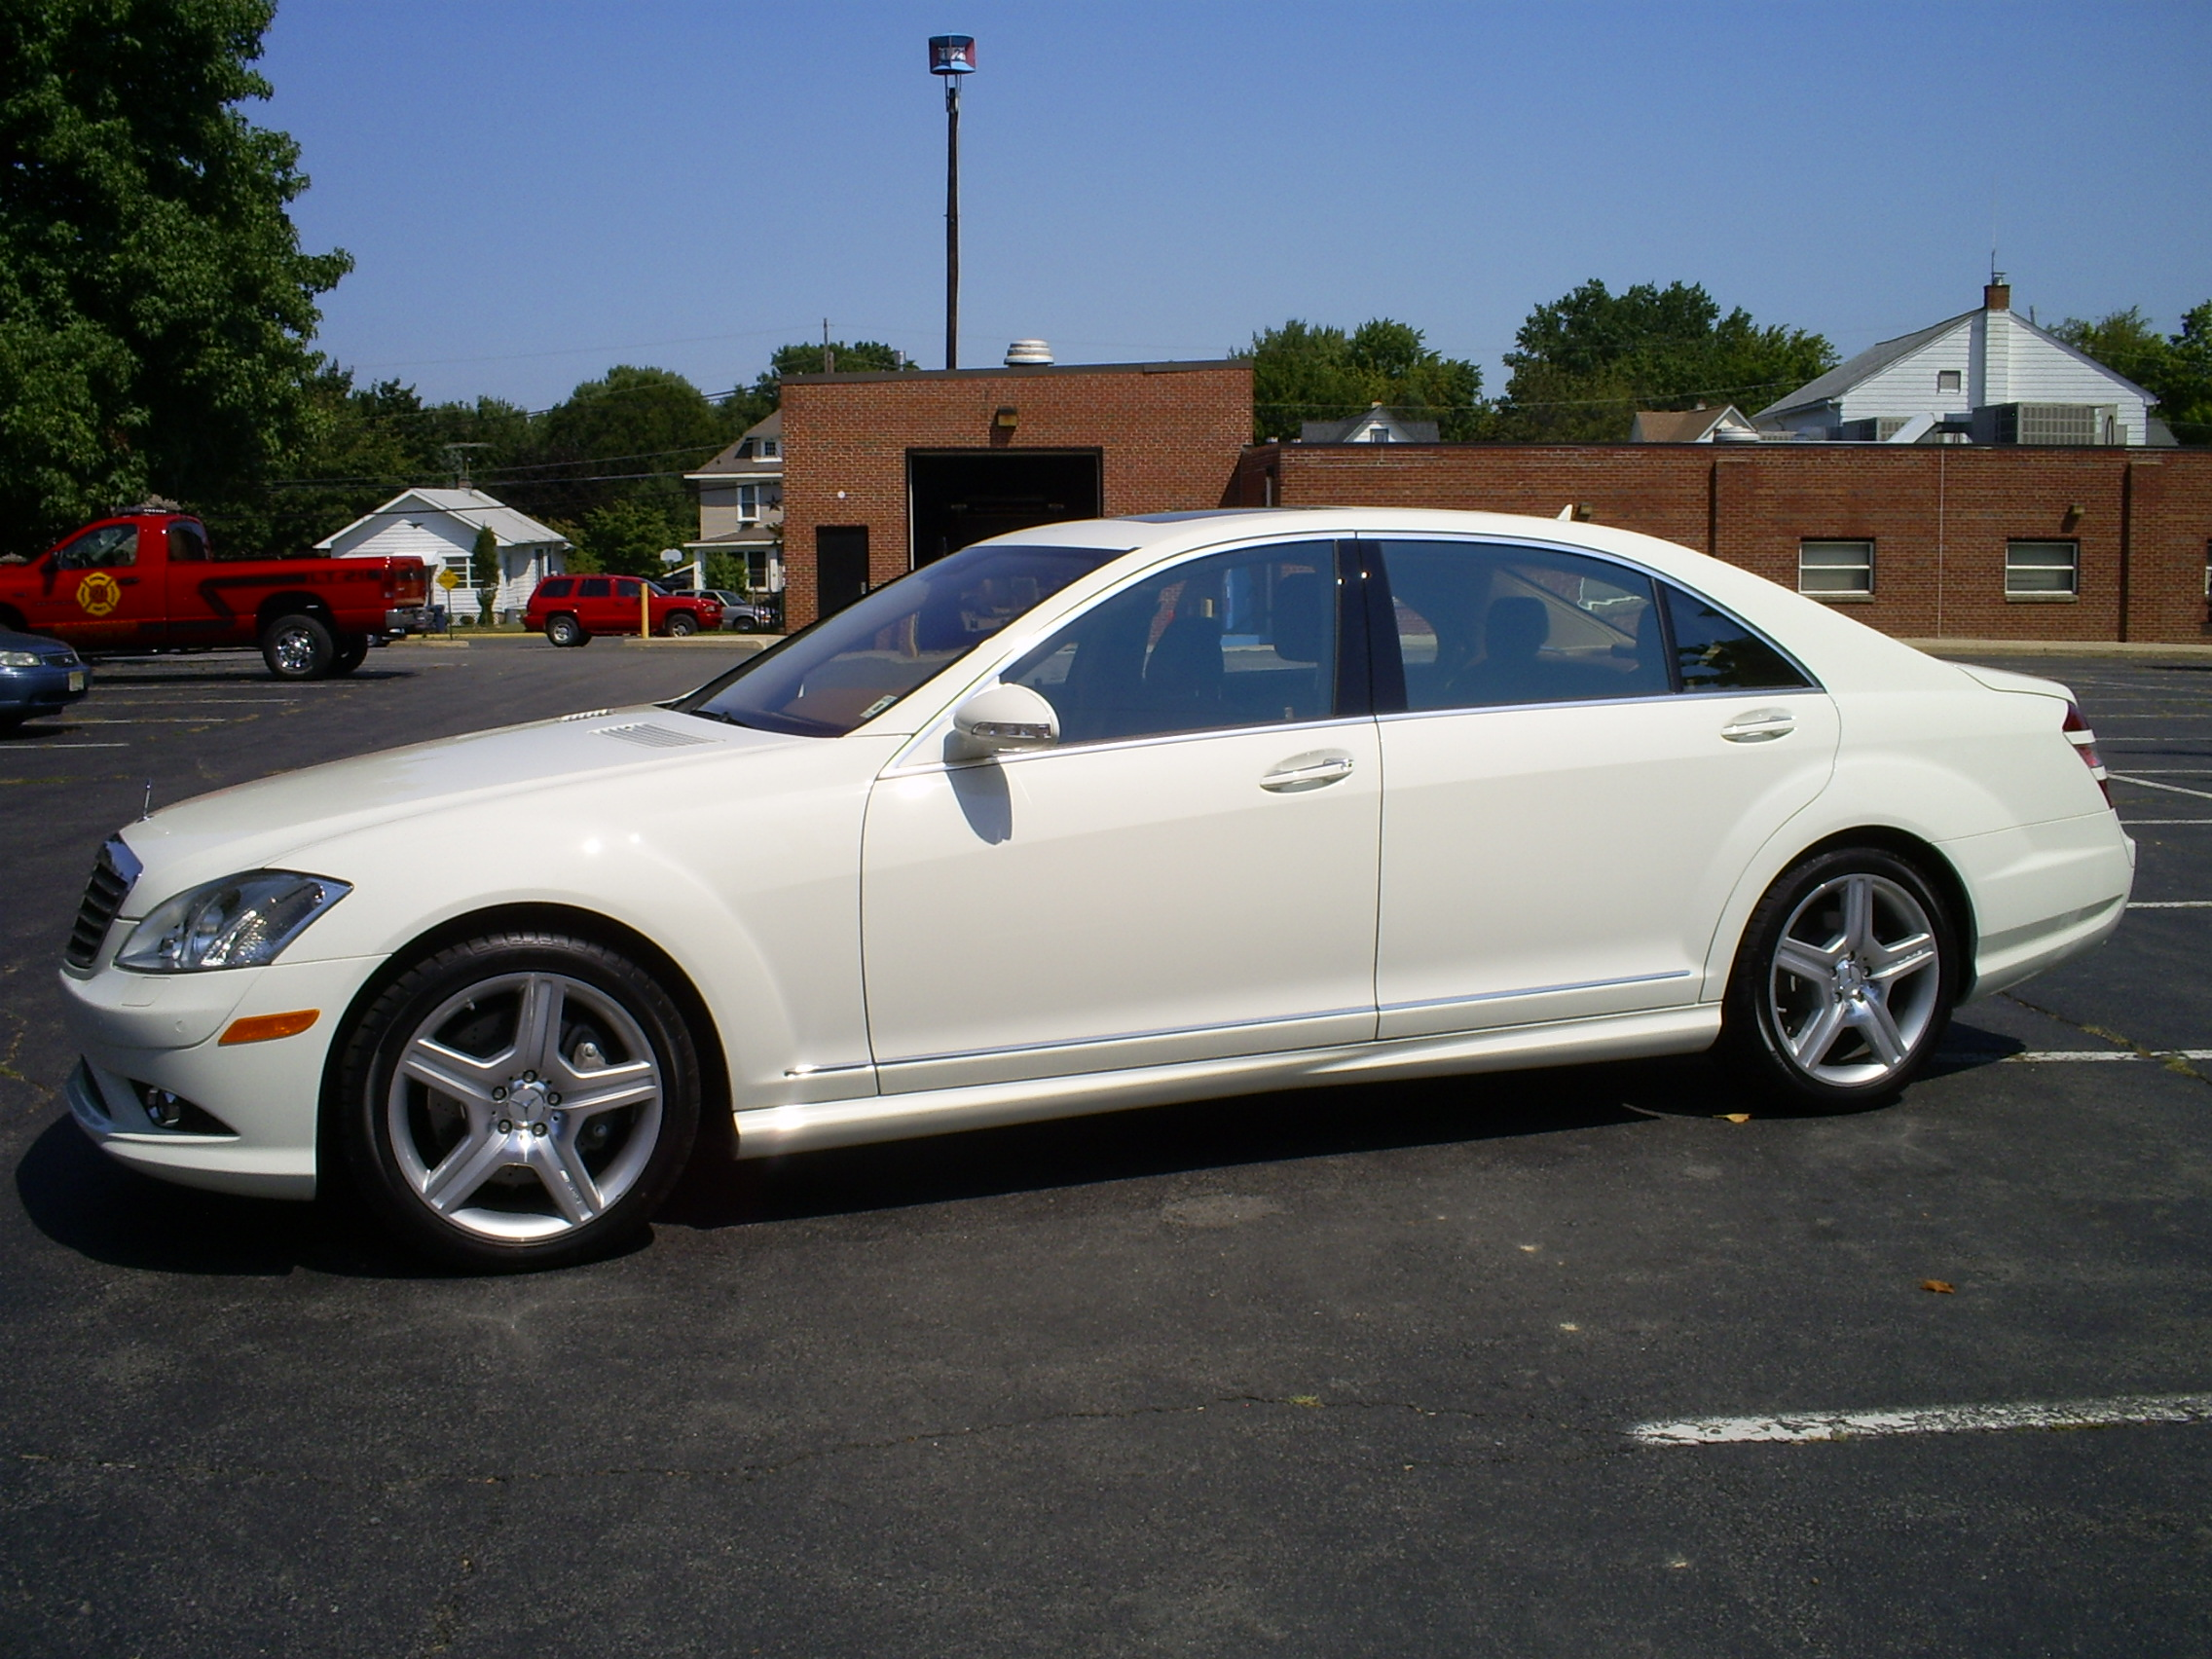 Mercedes benz s 550 picture 3 reviews news specs for S 550 mercedes benz for sale